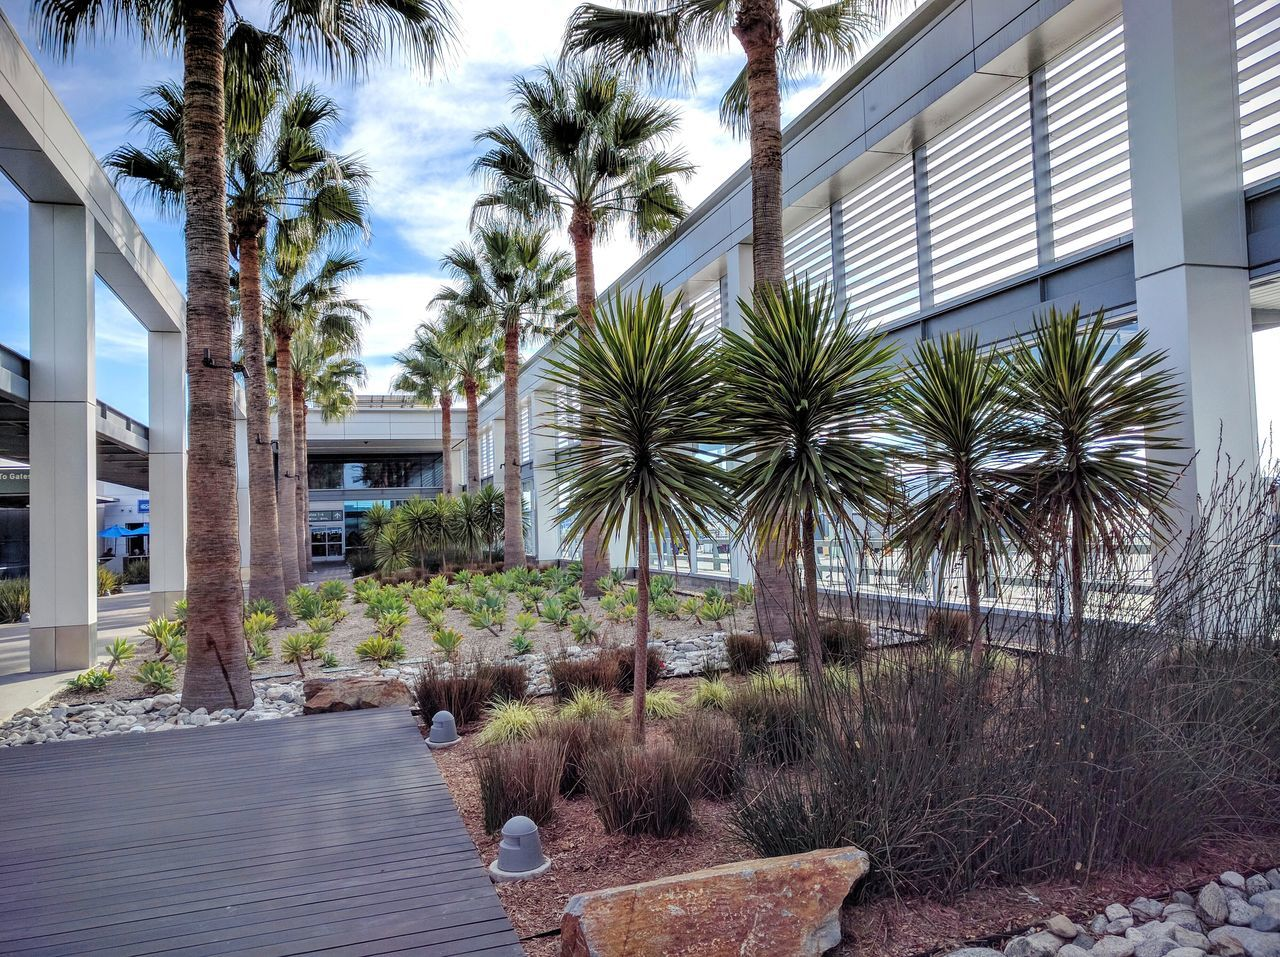 outdoor green area at long beach airport Palm Tree Architecture Built Structure Outdoors No People Eyem Gallery Taking Photos Eyeemphotography Mobile Photography Going To Vegas Airport EyeEm Gallery